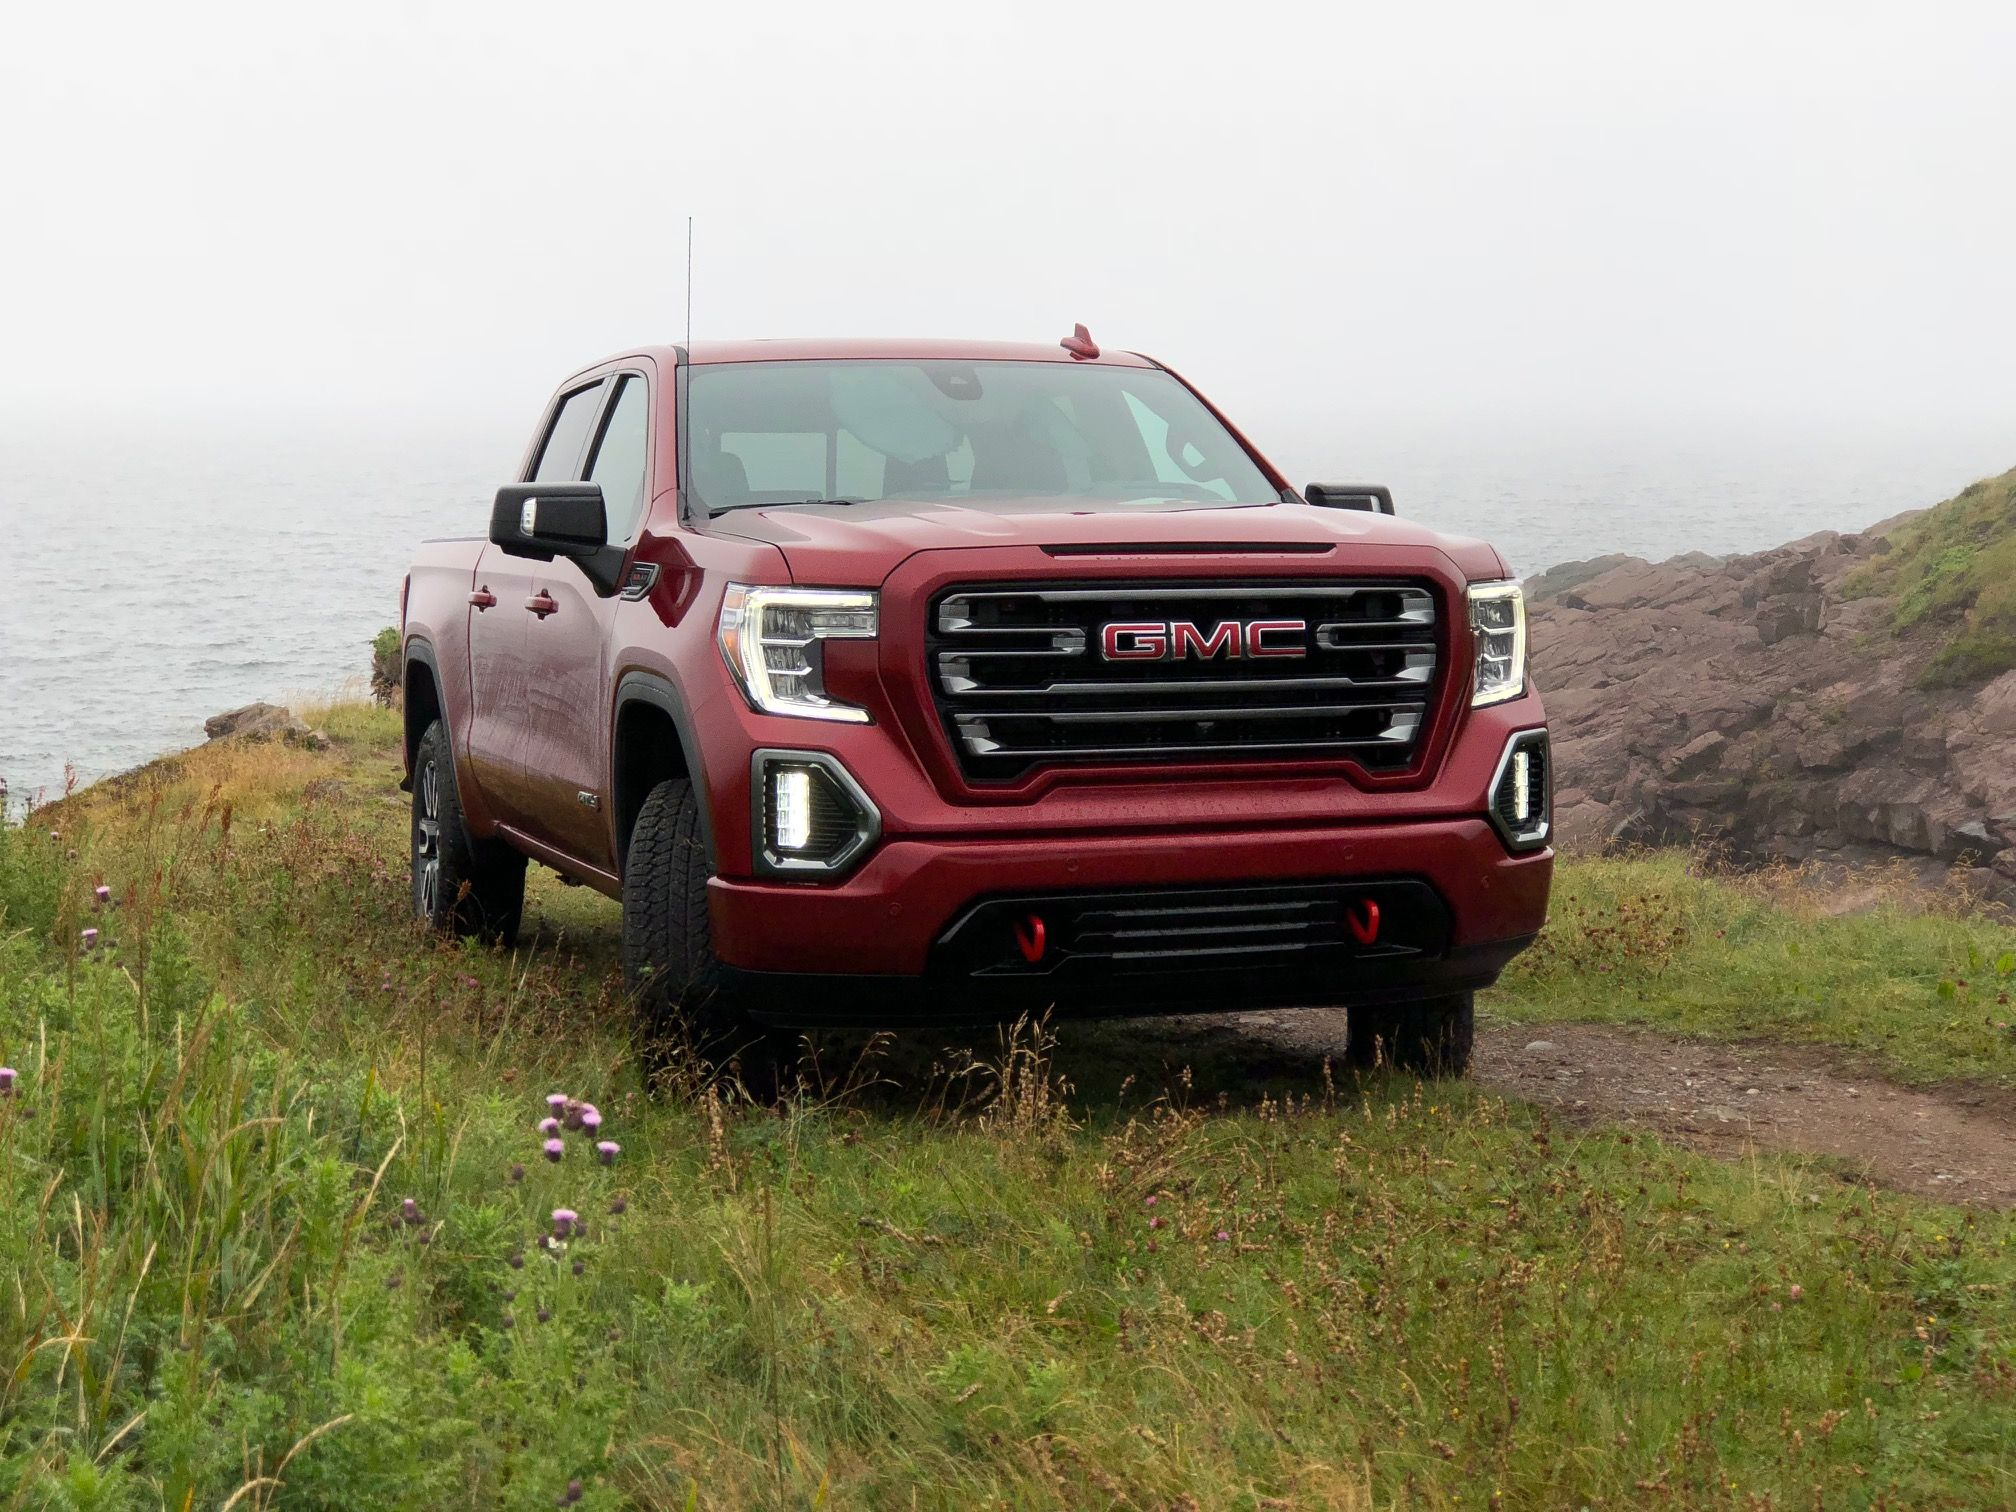 Top gear christmas gifts 2019 gmc